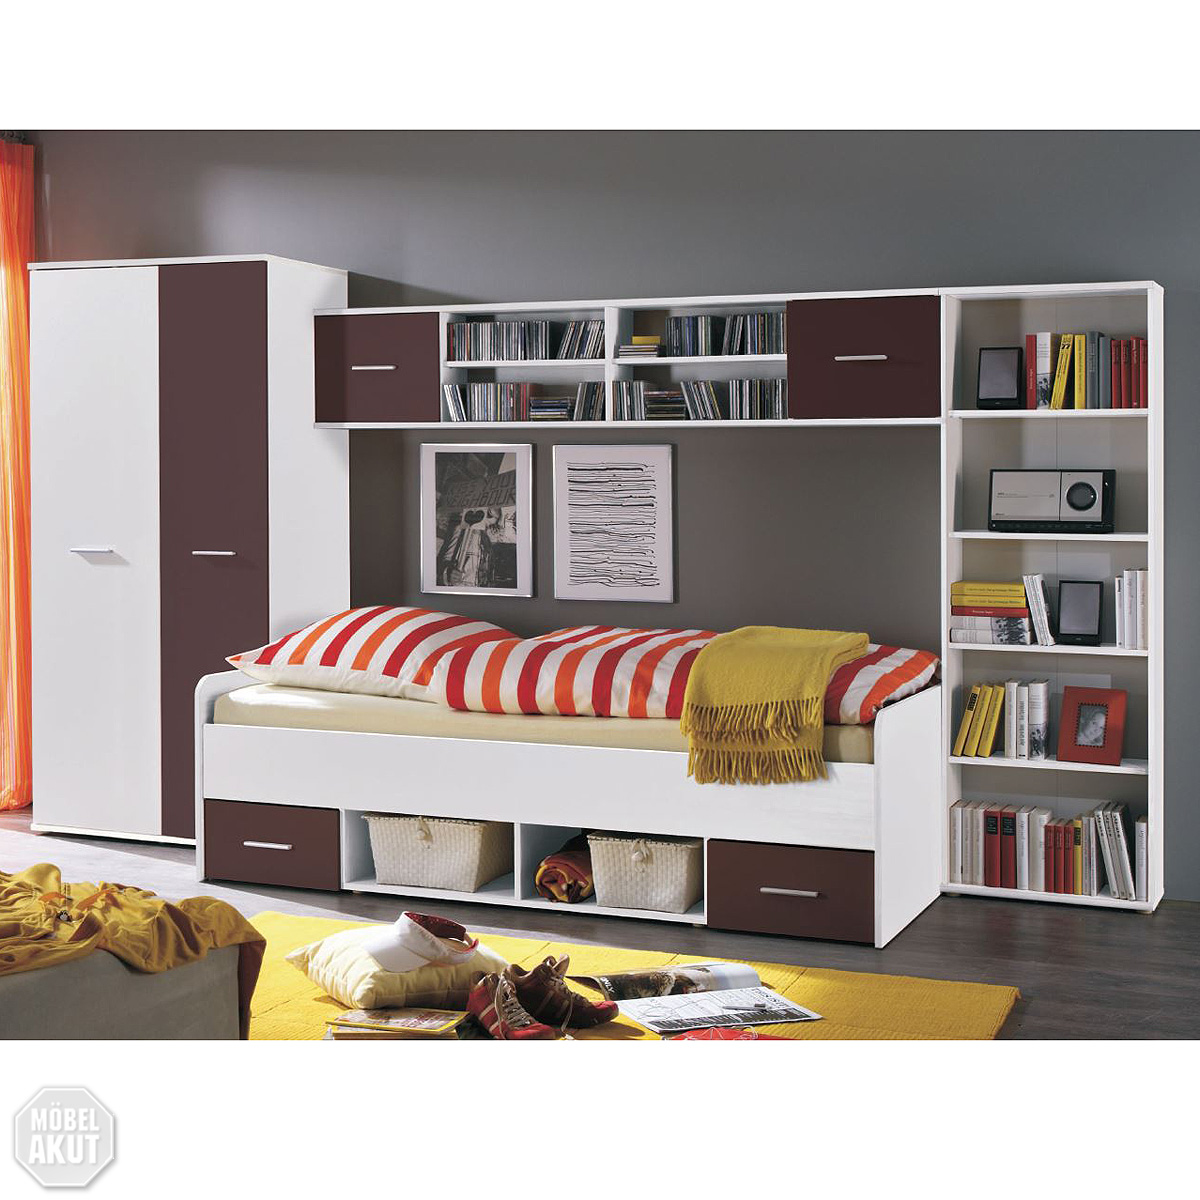 jugendzimmer set nadal kinderzimmer in wei und brombeer lila 4 tlg ebay. Black Bedroom Furniture Sets. Home Design Ideas